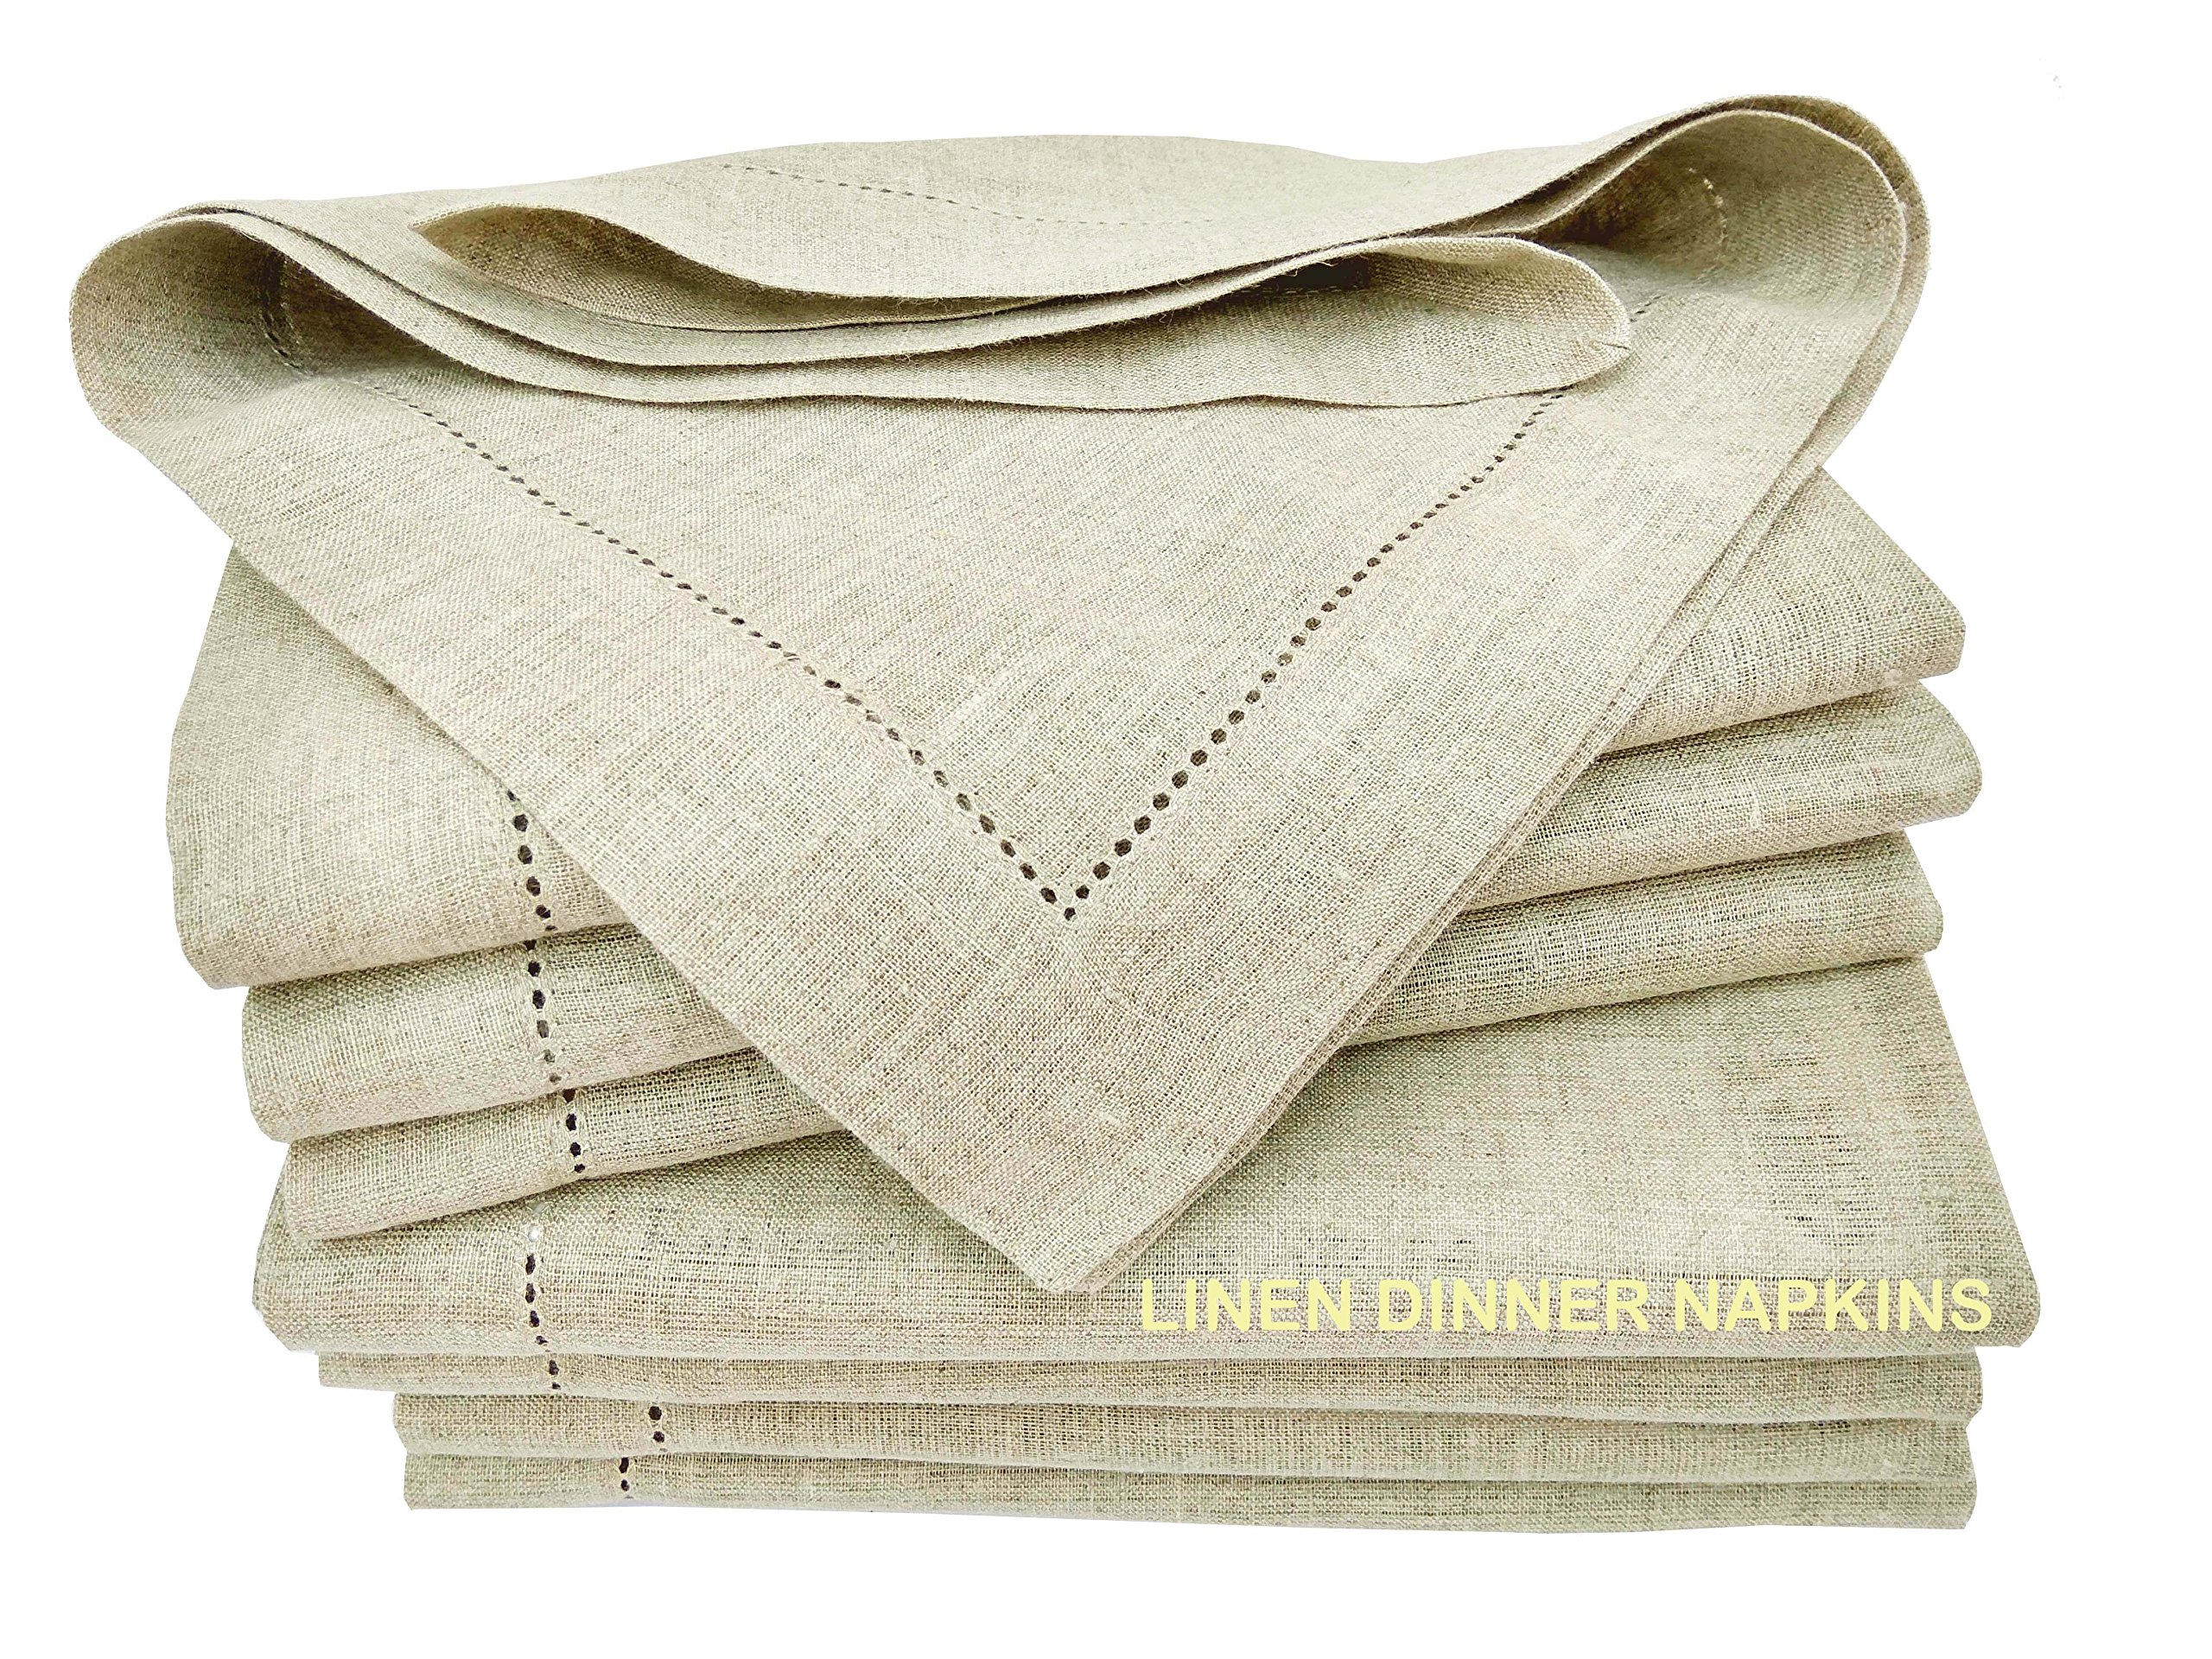 Linen Clubs Pack of 12, 100% Pure Linen Rustic Dinner Napkin with Hem Stitched 16x16, Natural Color Hemstitched Hand Made Ladder lace Look Napkins. One of Life's Little Home Luxuries